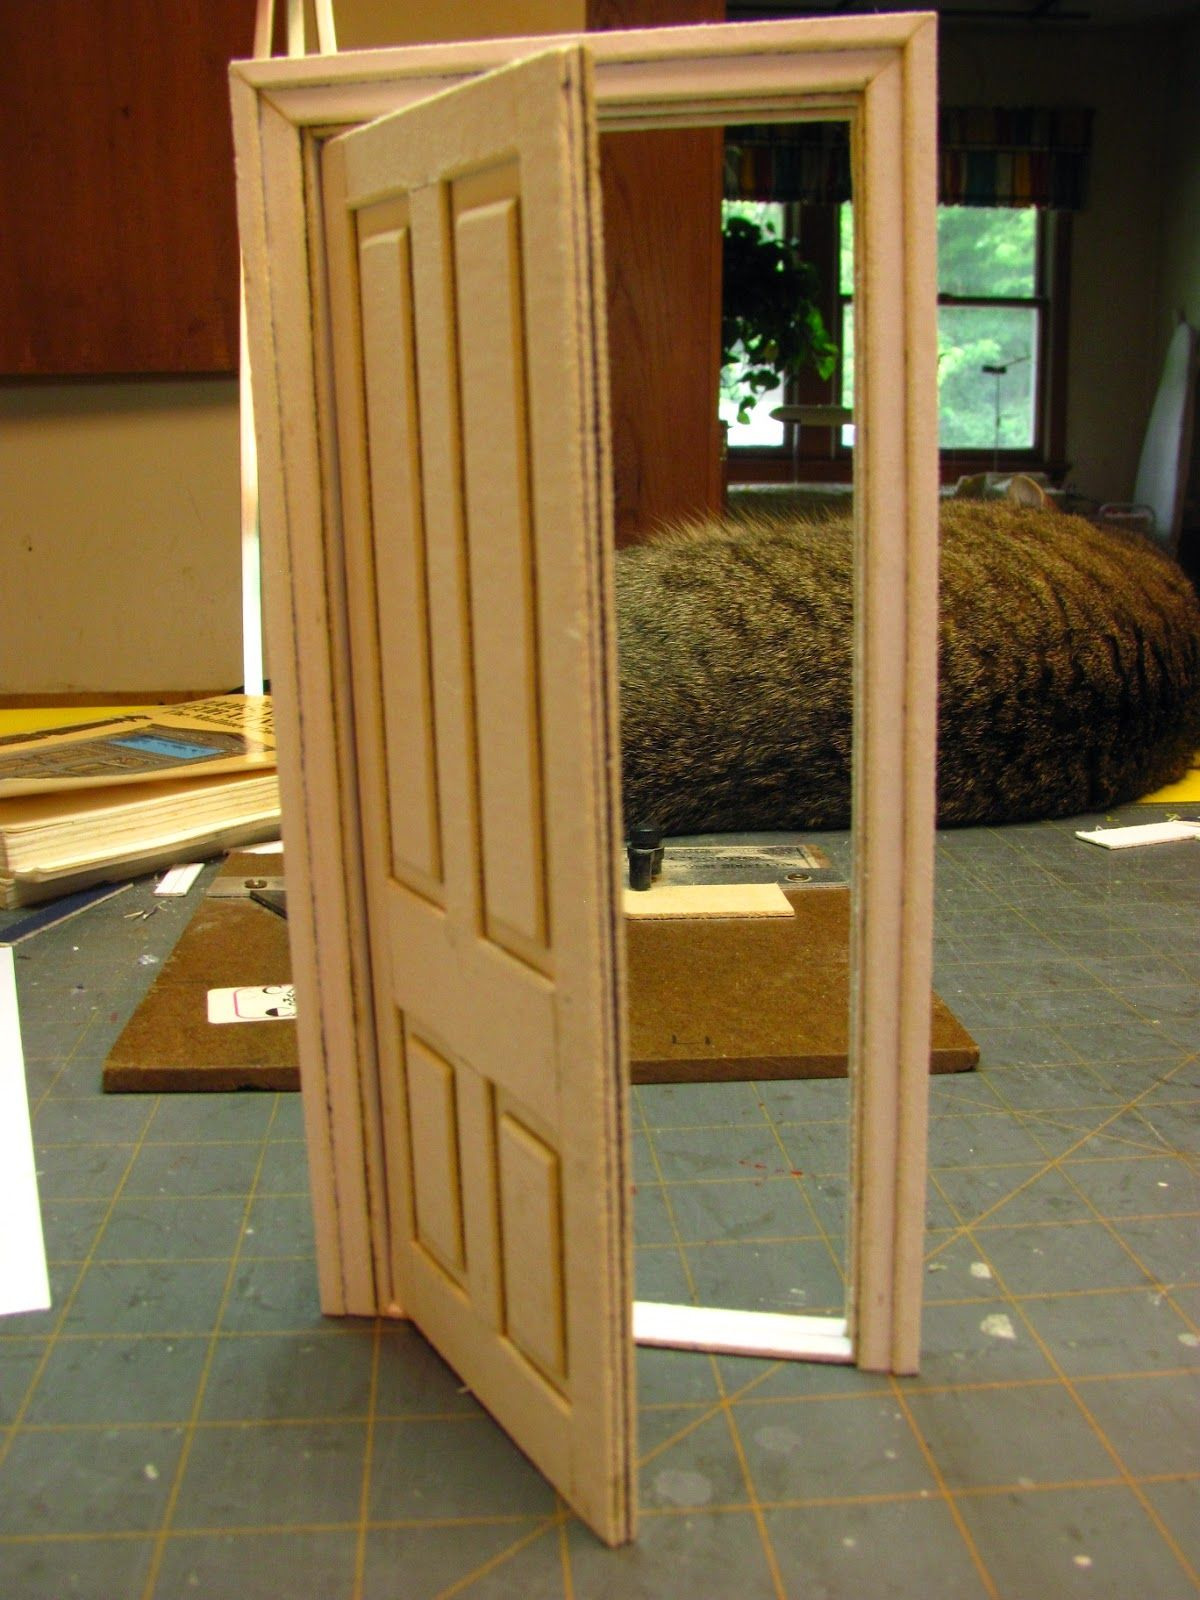 How to make a 1 inch scale dollhouse interior door and - How to build a door jamb for interior doors ...